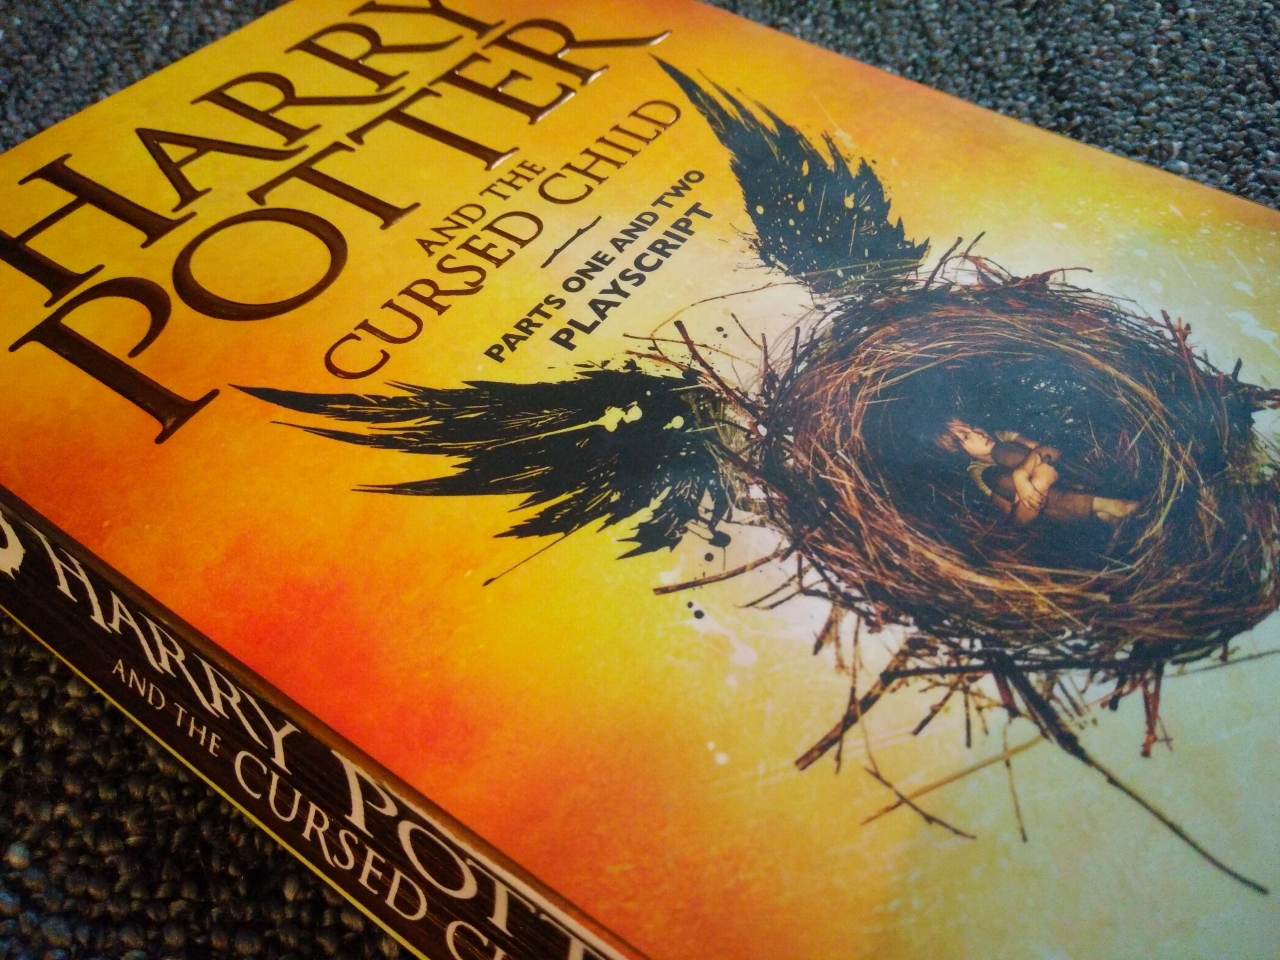 Harry Potter and the Cursed Child by John Tiffany, Jack Thorne, J.K. Rowling